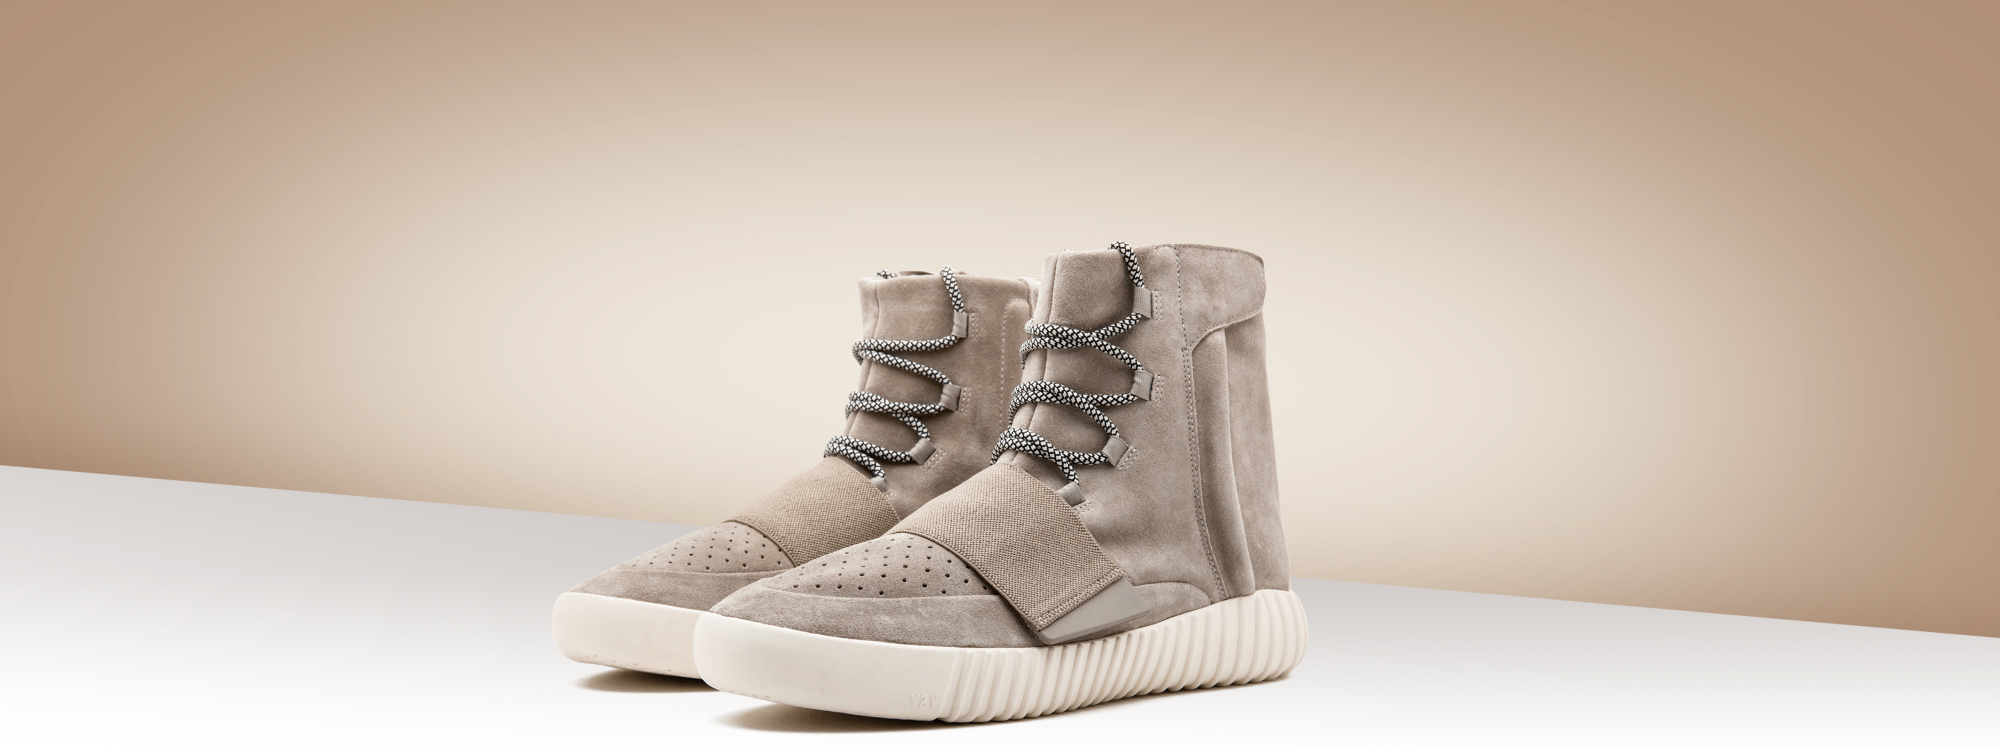 The best Adidas Yeezy Boost 750 Gray / White sneakers